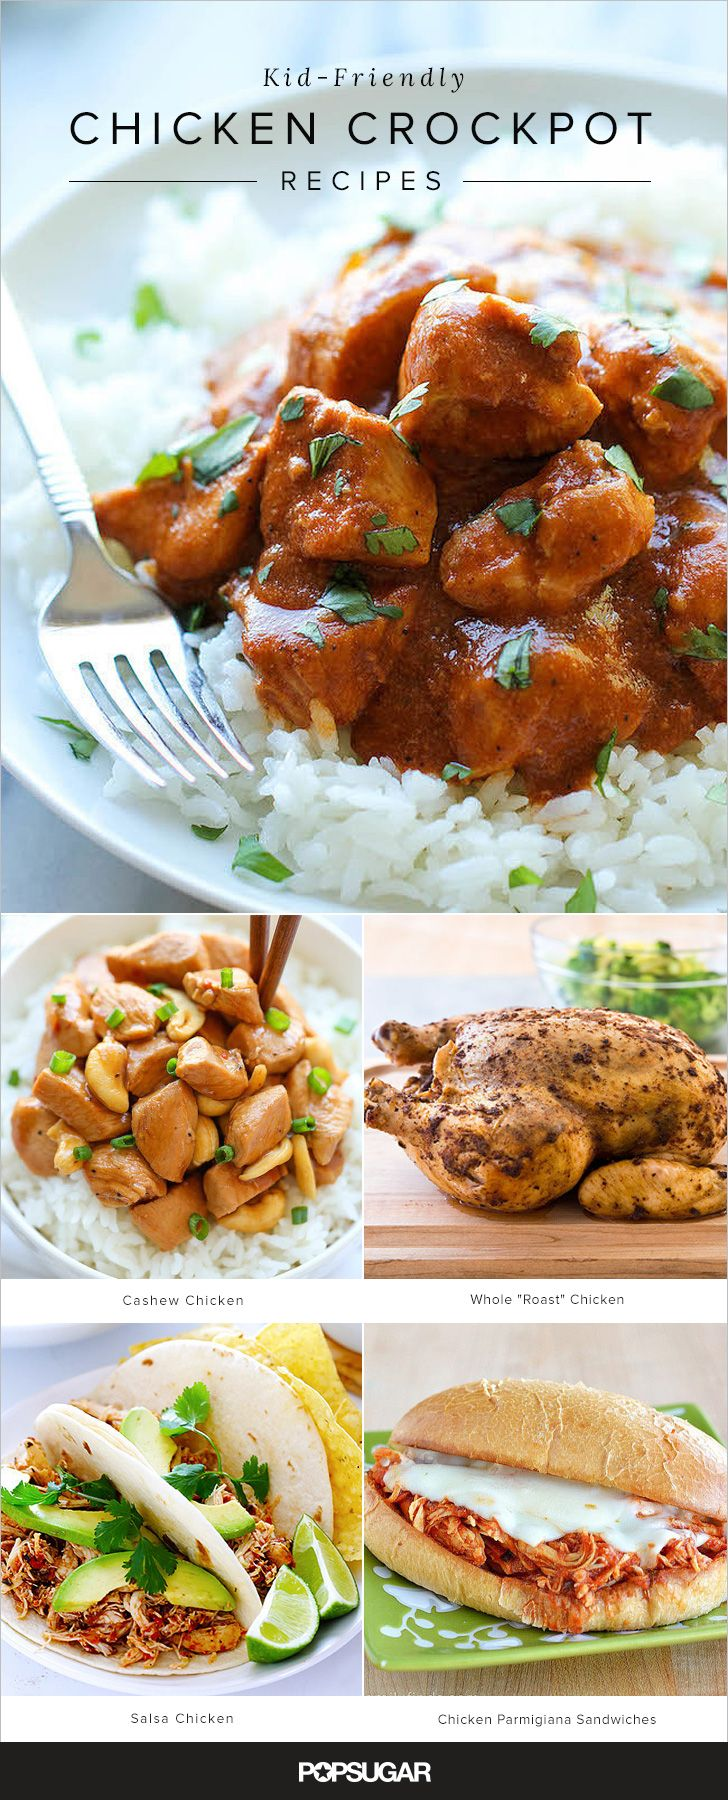 19 kid-friendly chicken recipes you can make in the crockpot that you'll enjoy too!